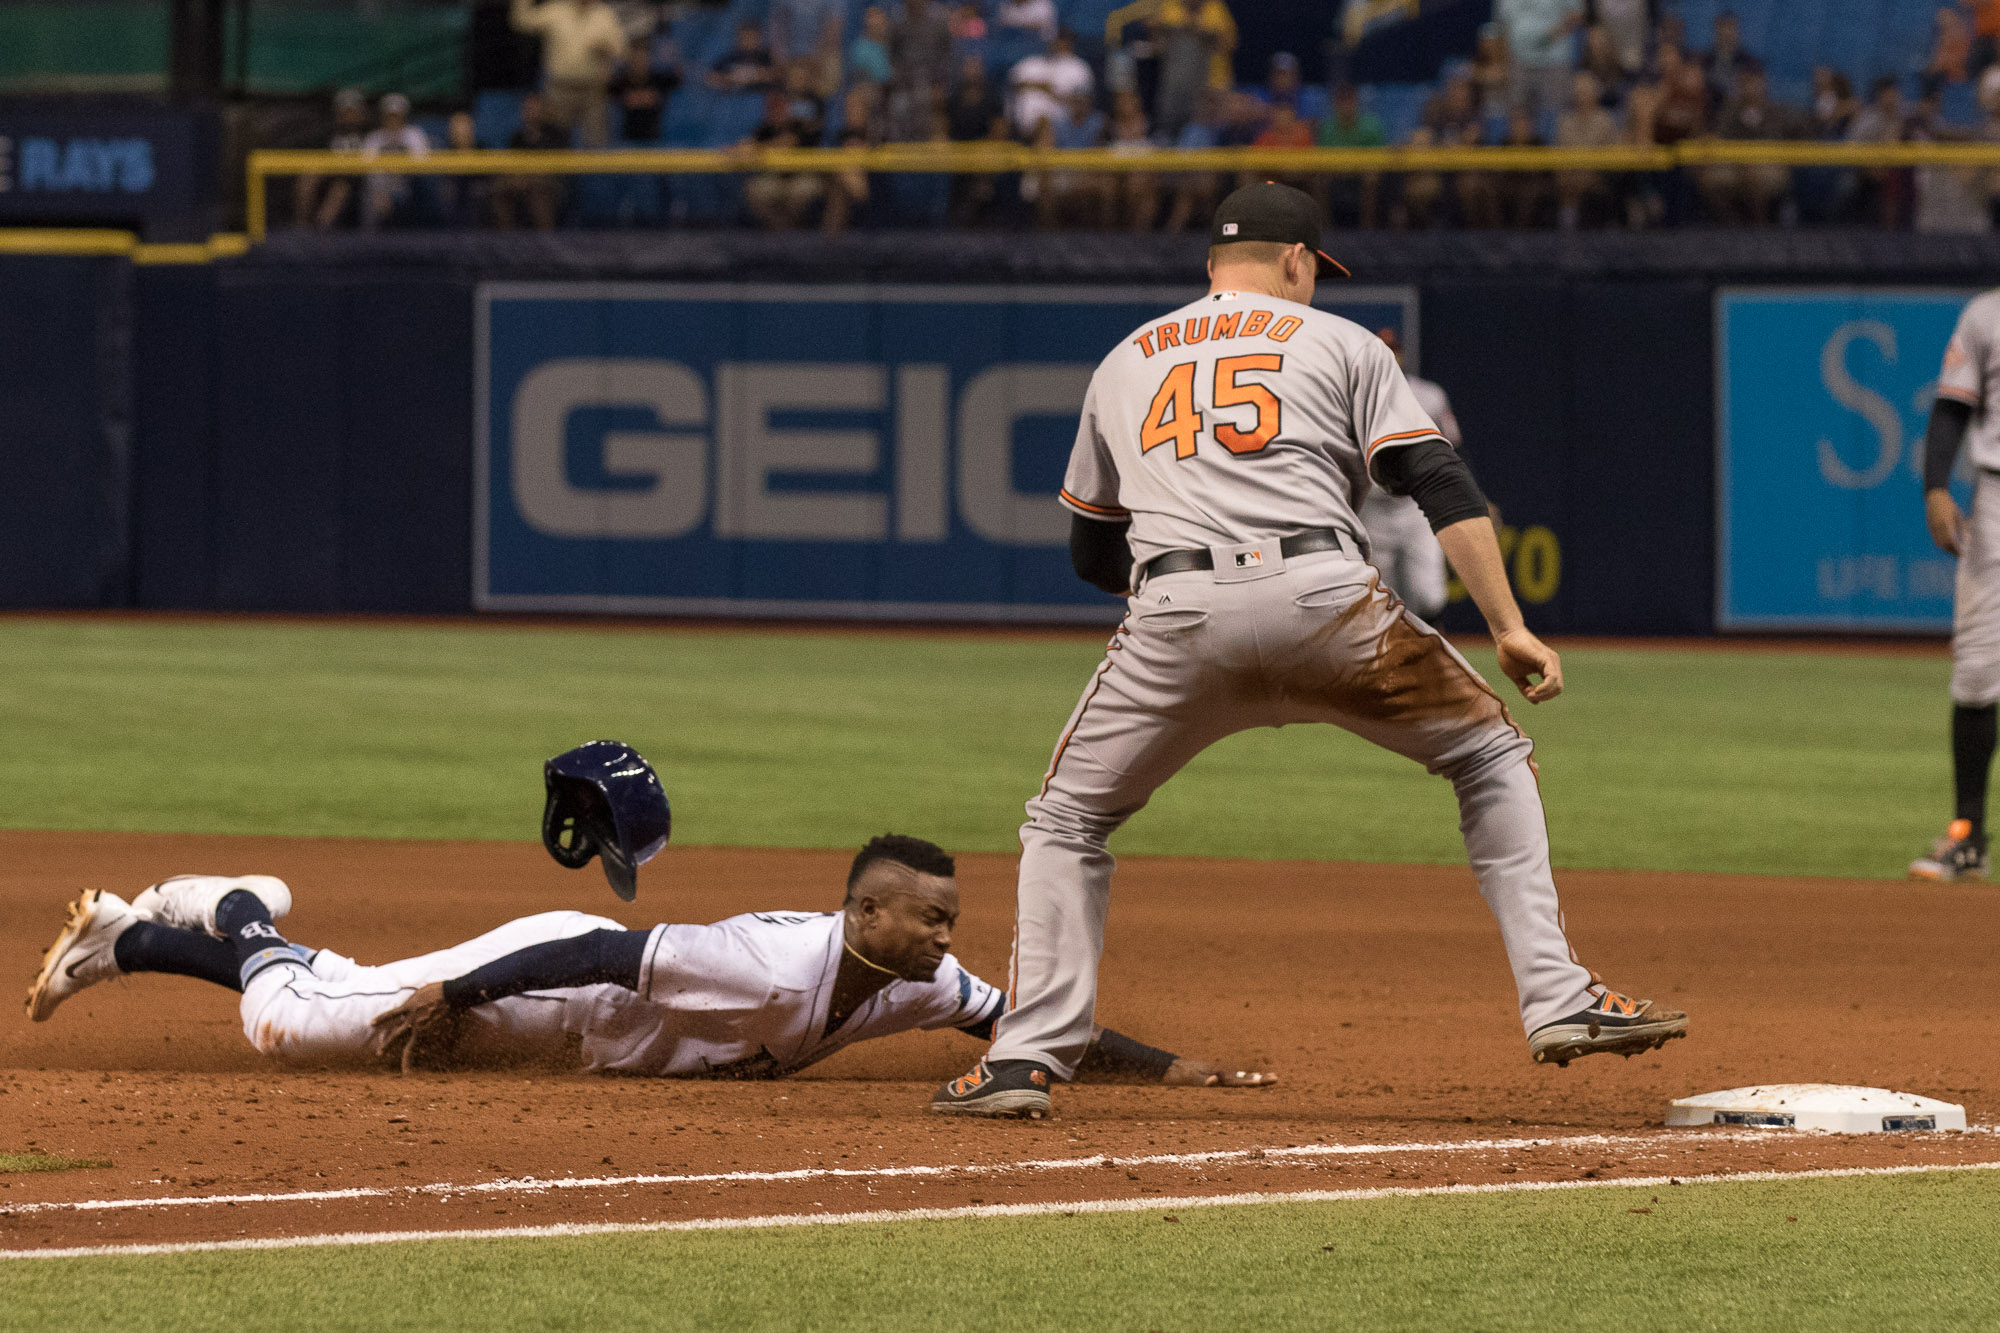 Tim Beckham attempts to slide back to first but is doubled off./STEVEN MUNCIE